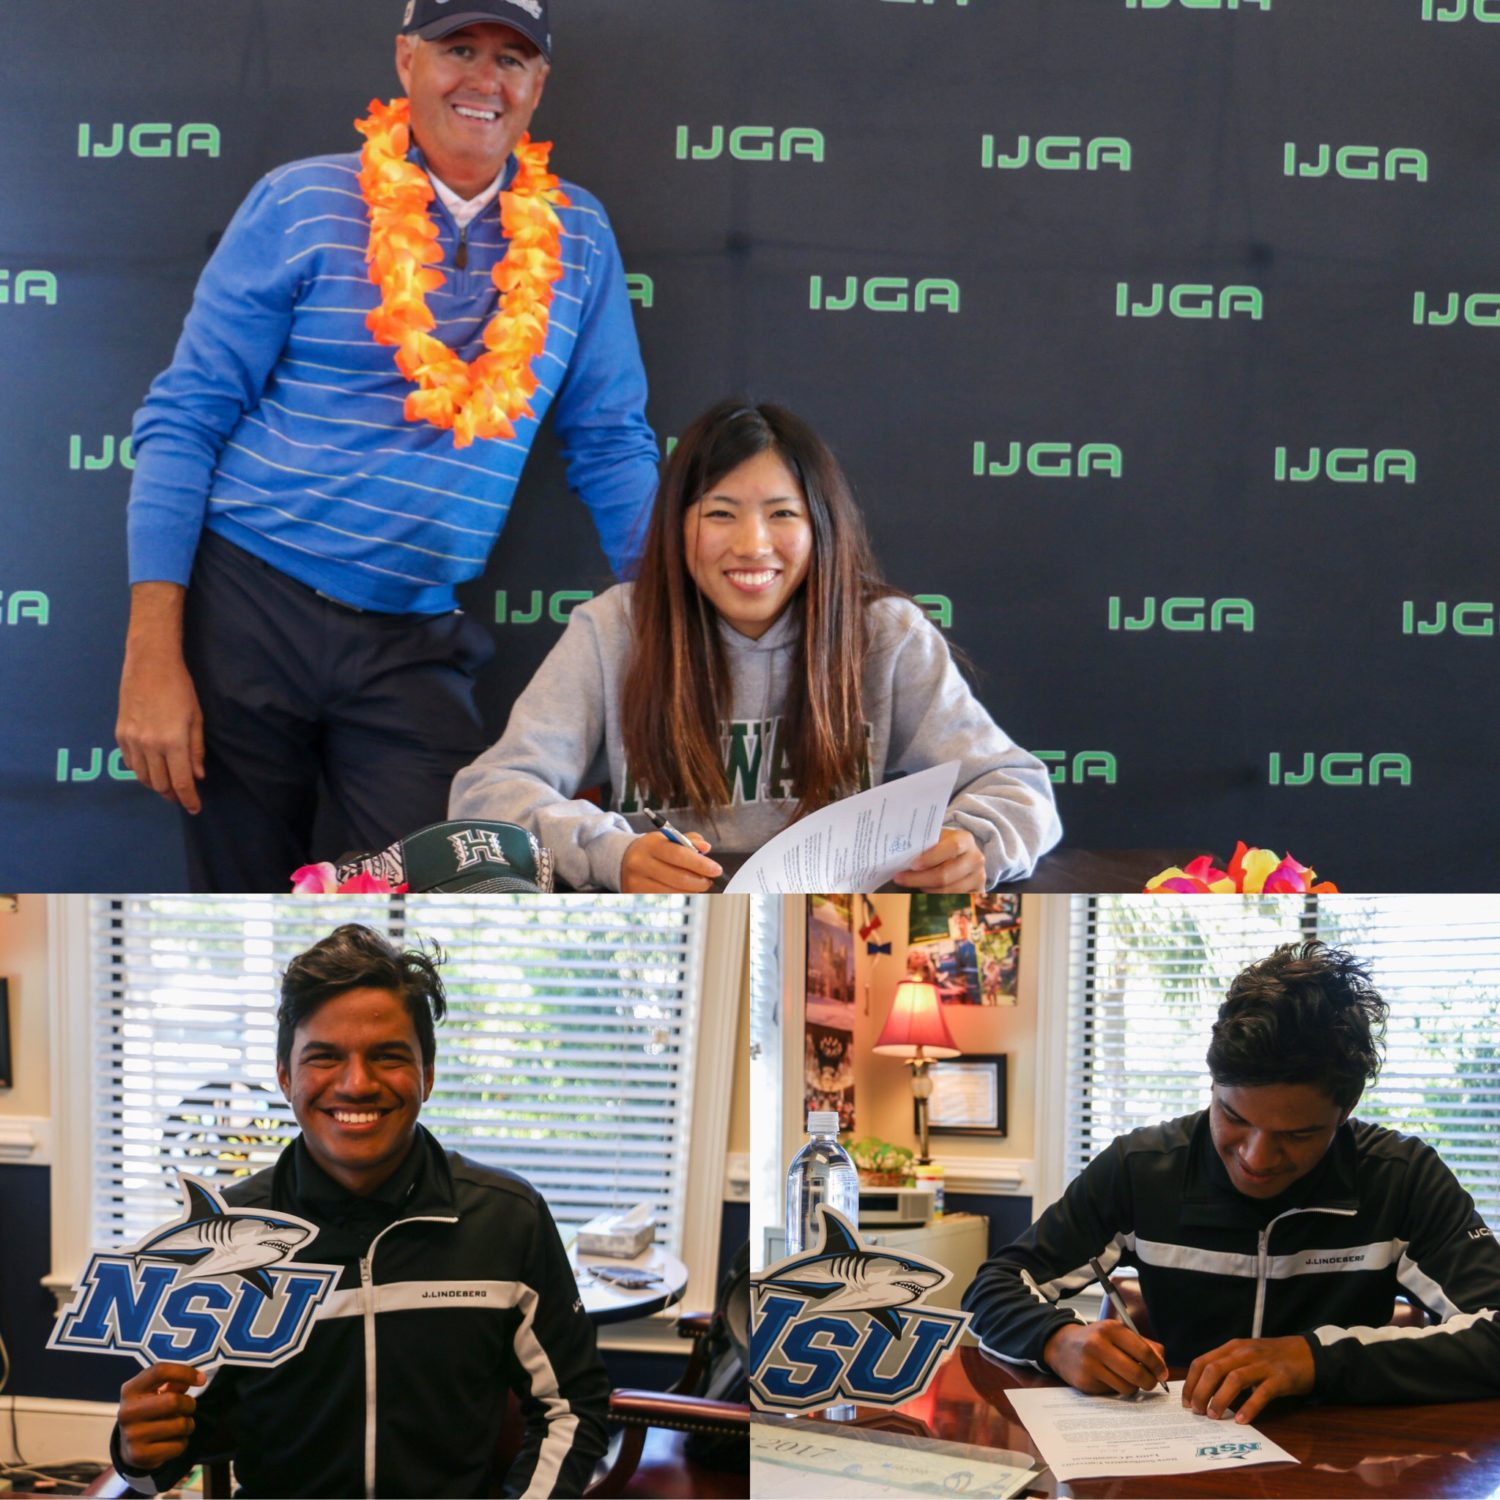 IJGA Student-Athlete Haruka Shintani Signs NCAA National Letters of Intent